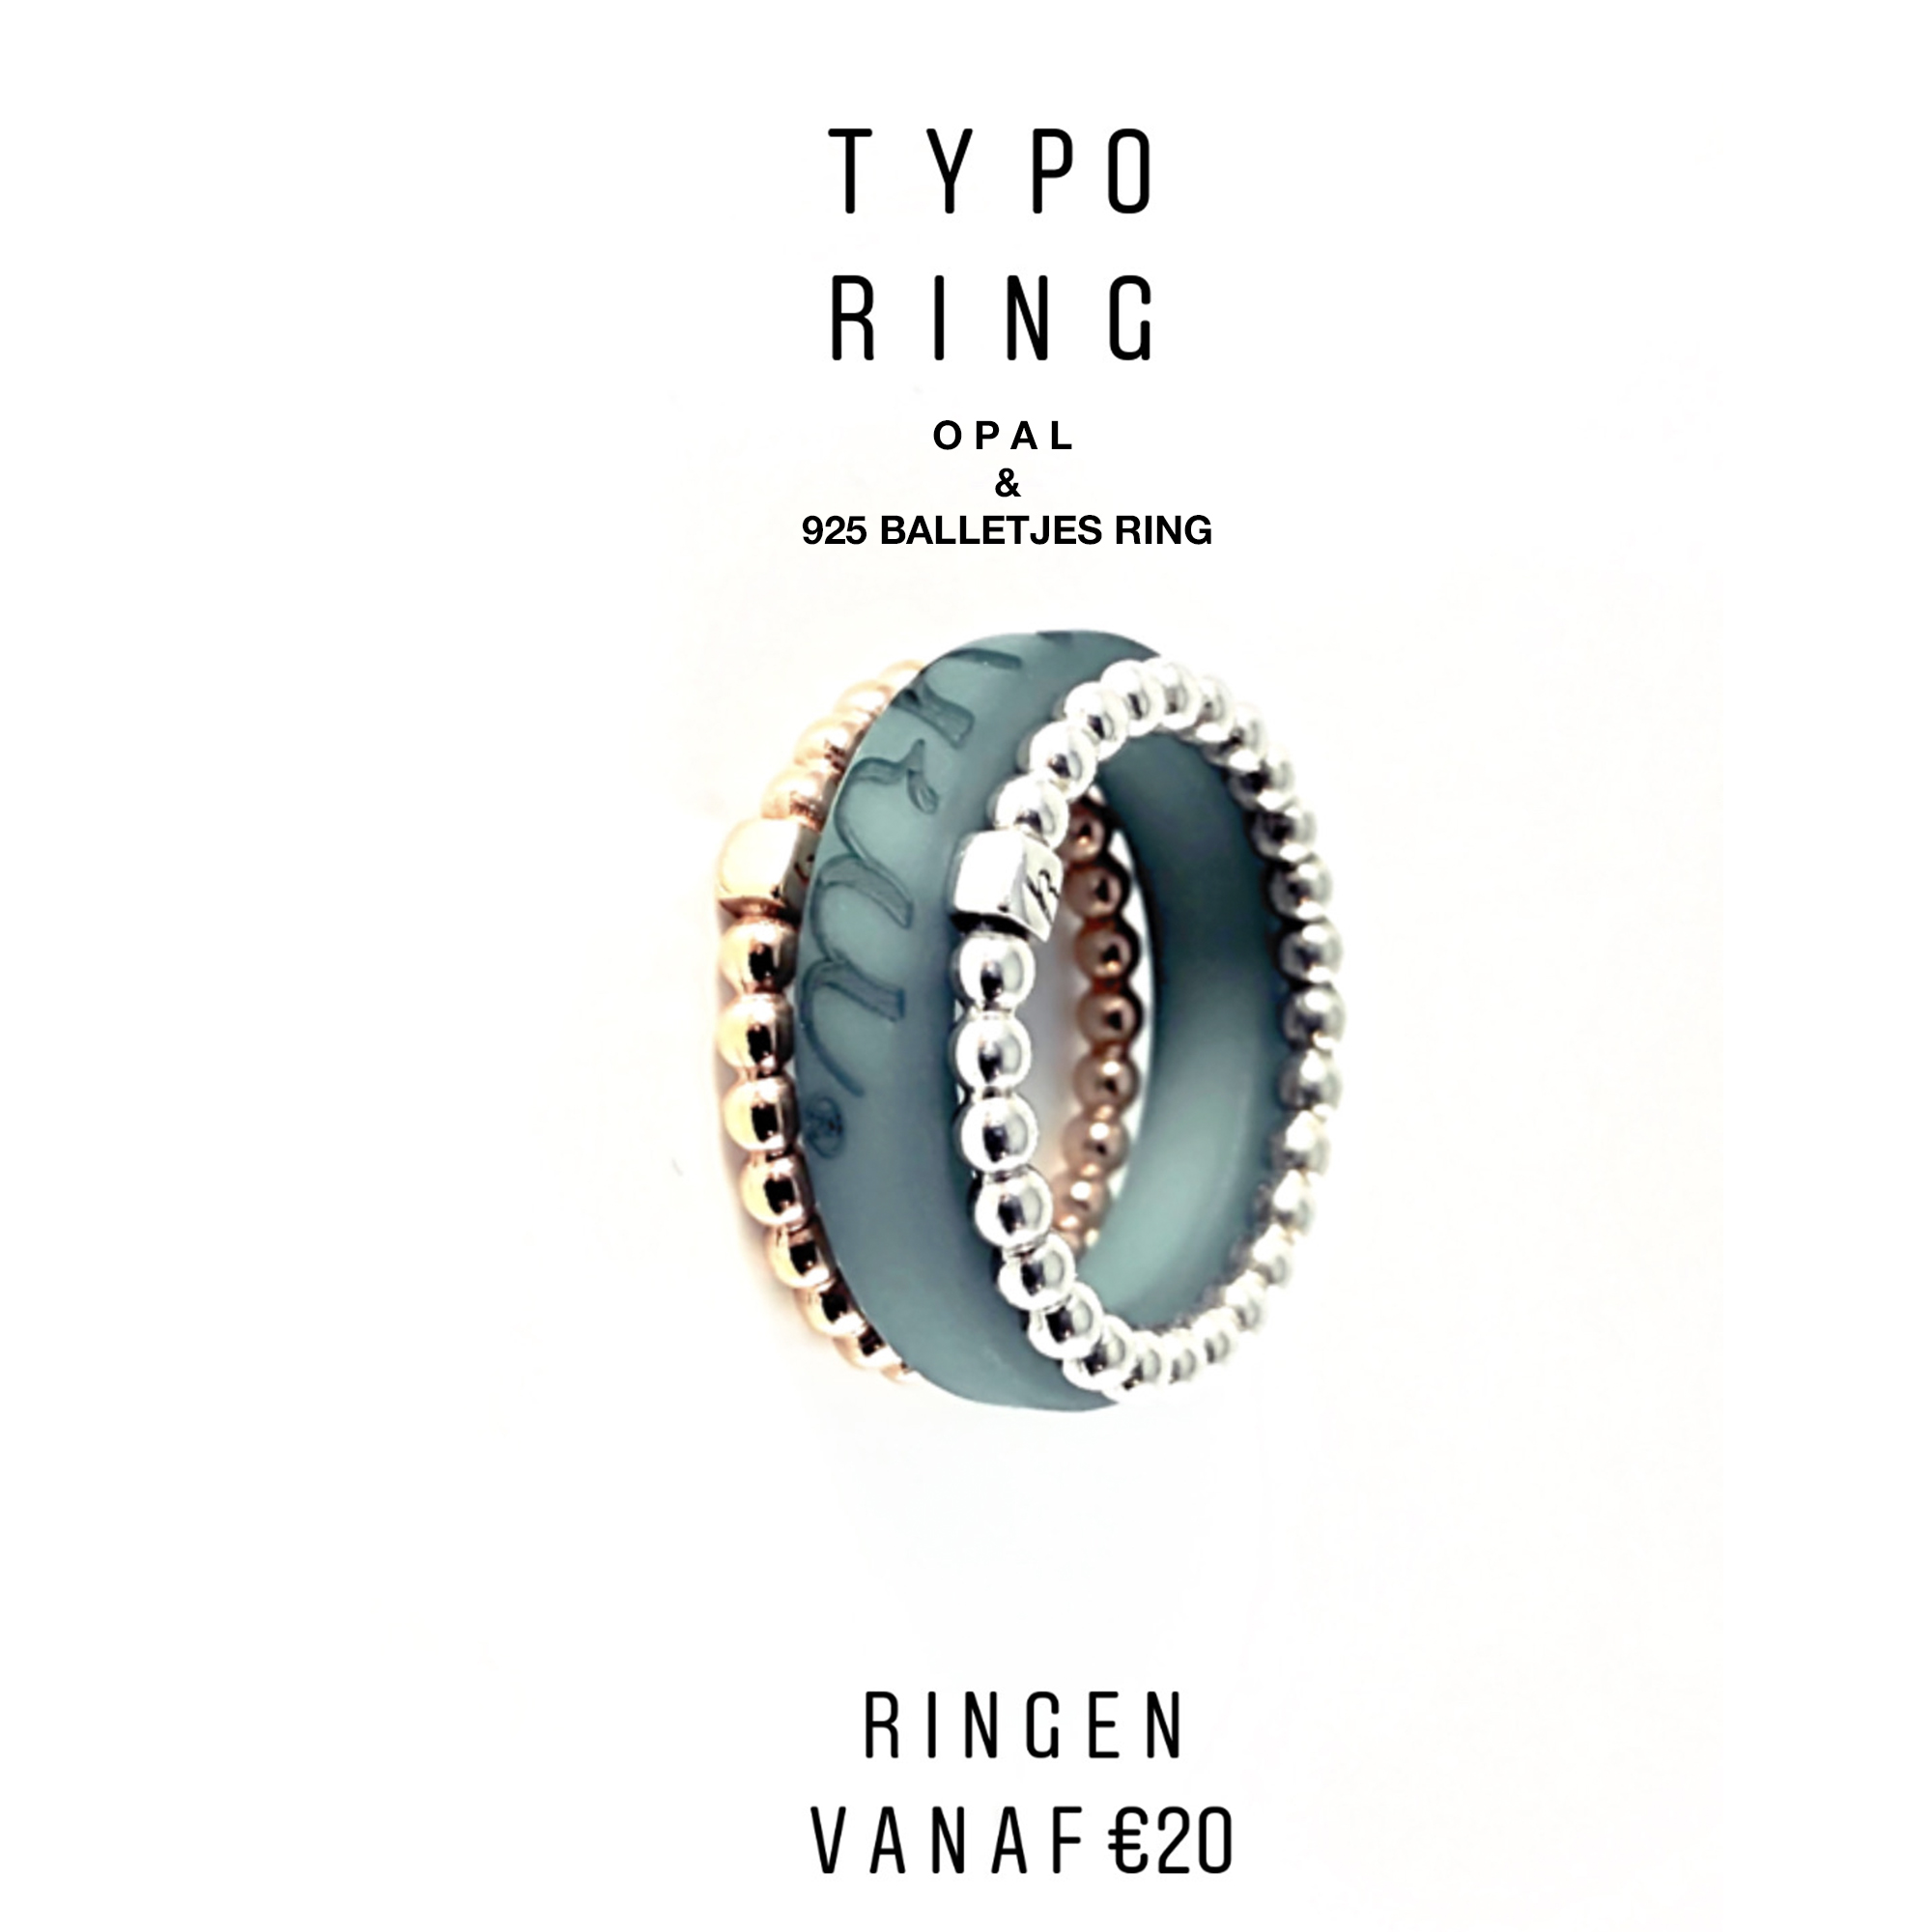 Ecologisch product typoring color: een ring in de kleur van je inlay